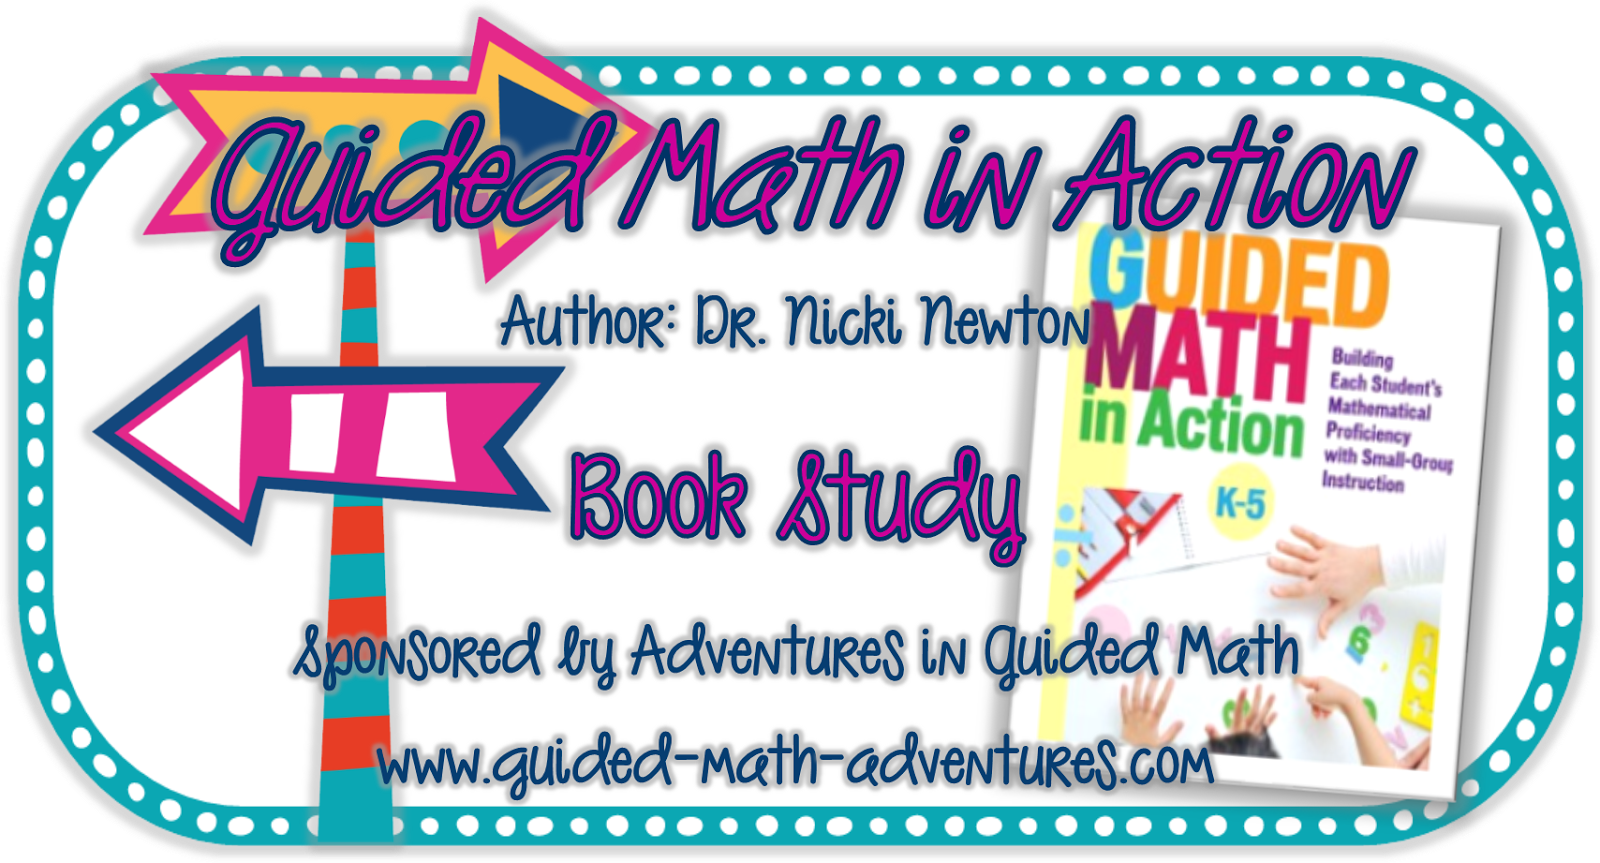 http://www.guided-math-adventures.com/